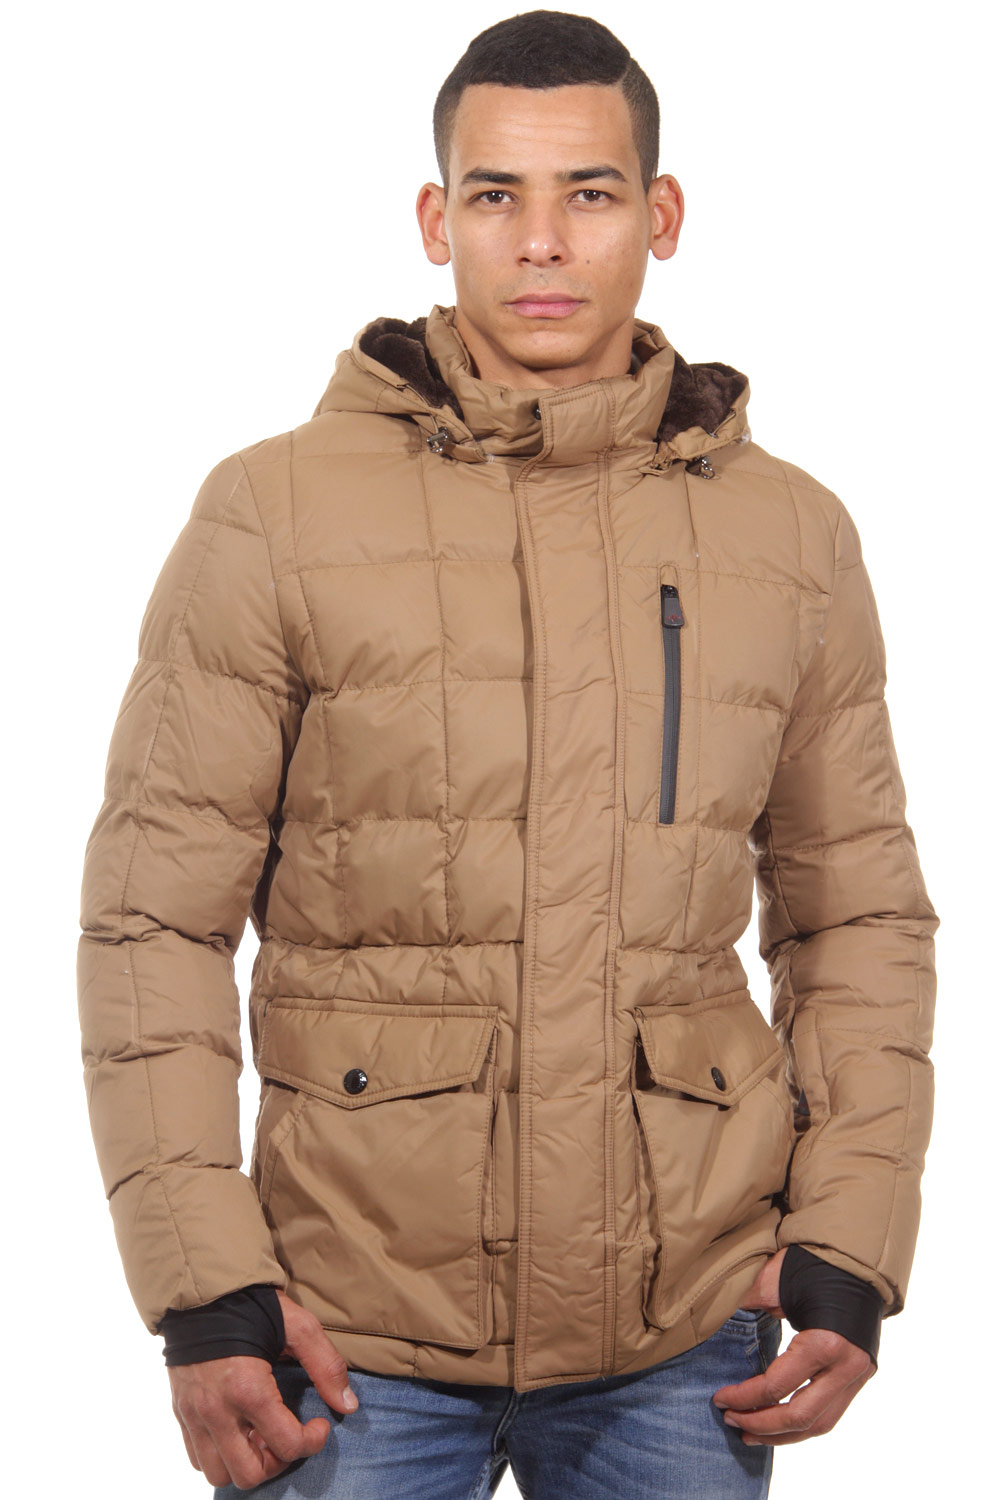 R-NEAL quilted jacket regular fit at oboy.com